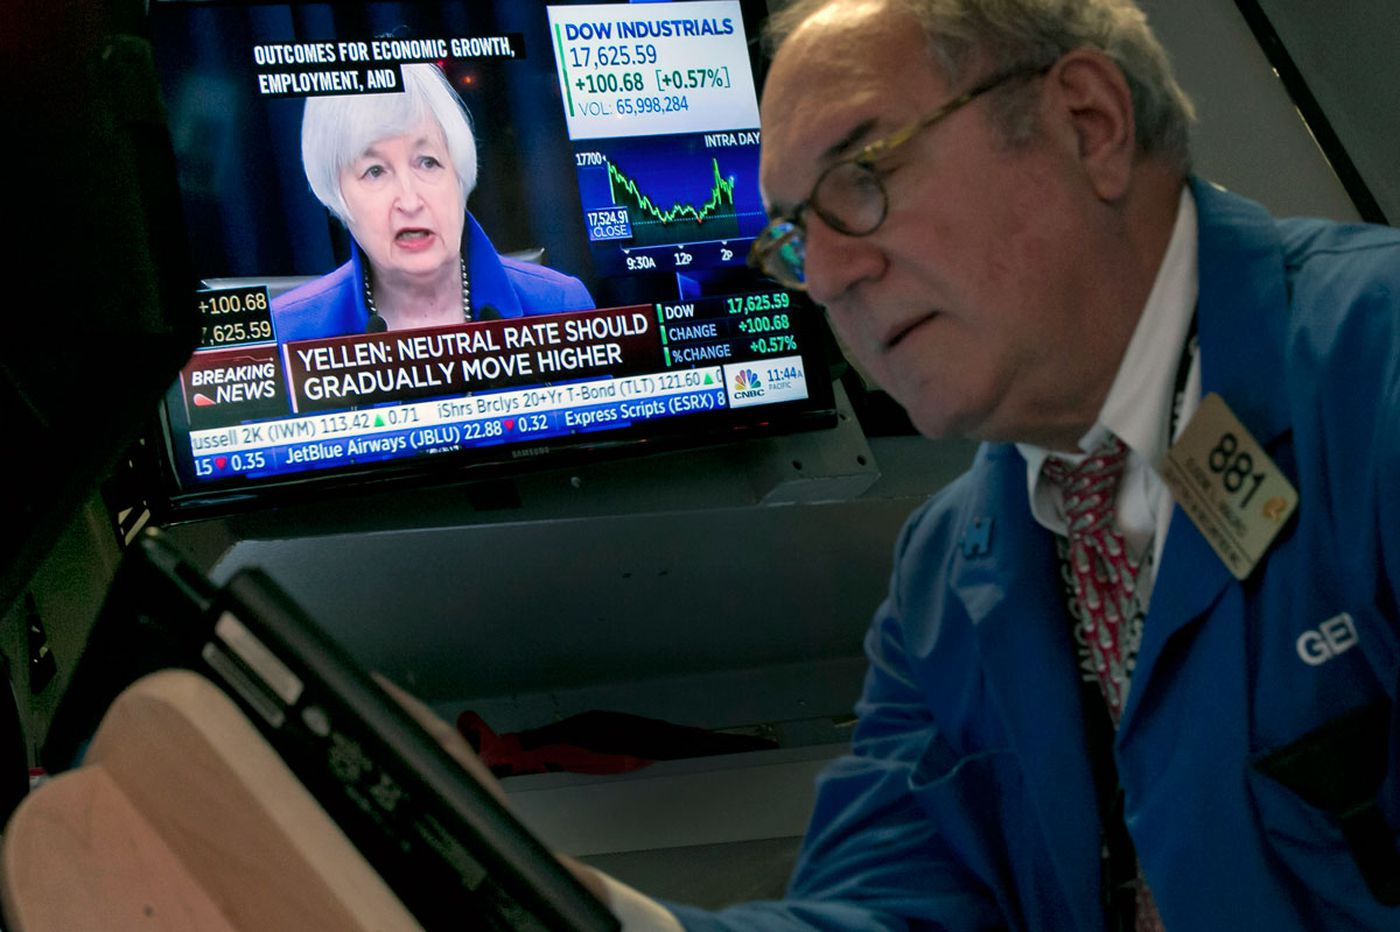 Fed finally bumps up interest rates; consumer effect minimal in short run